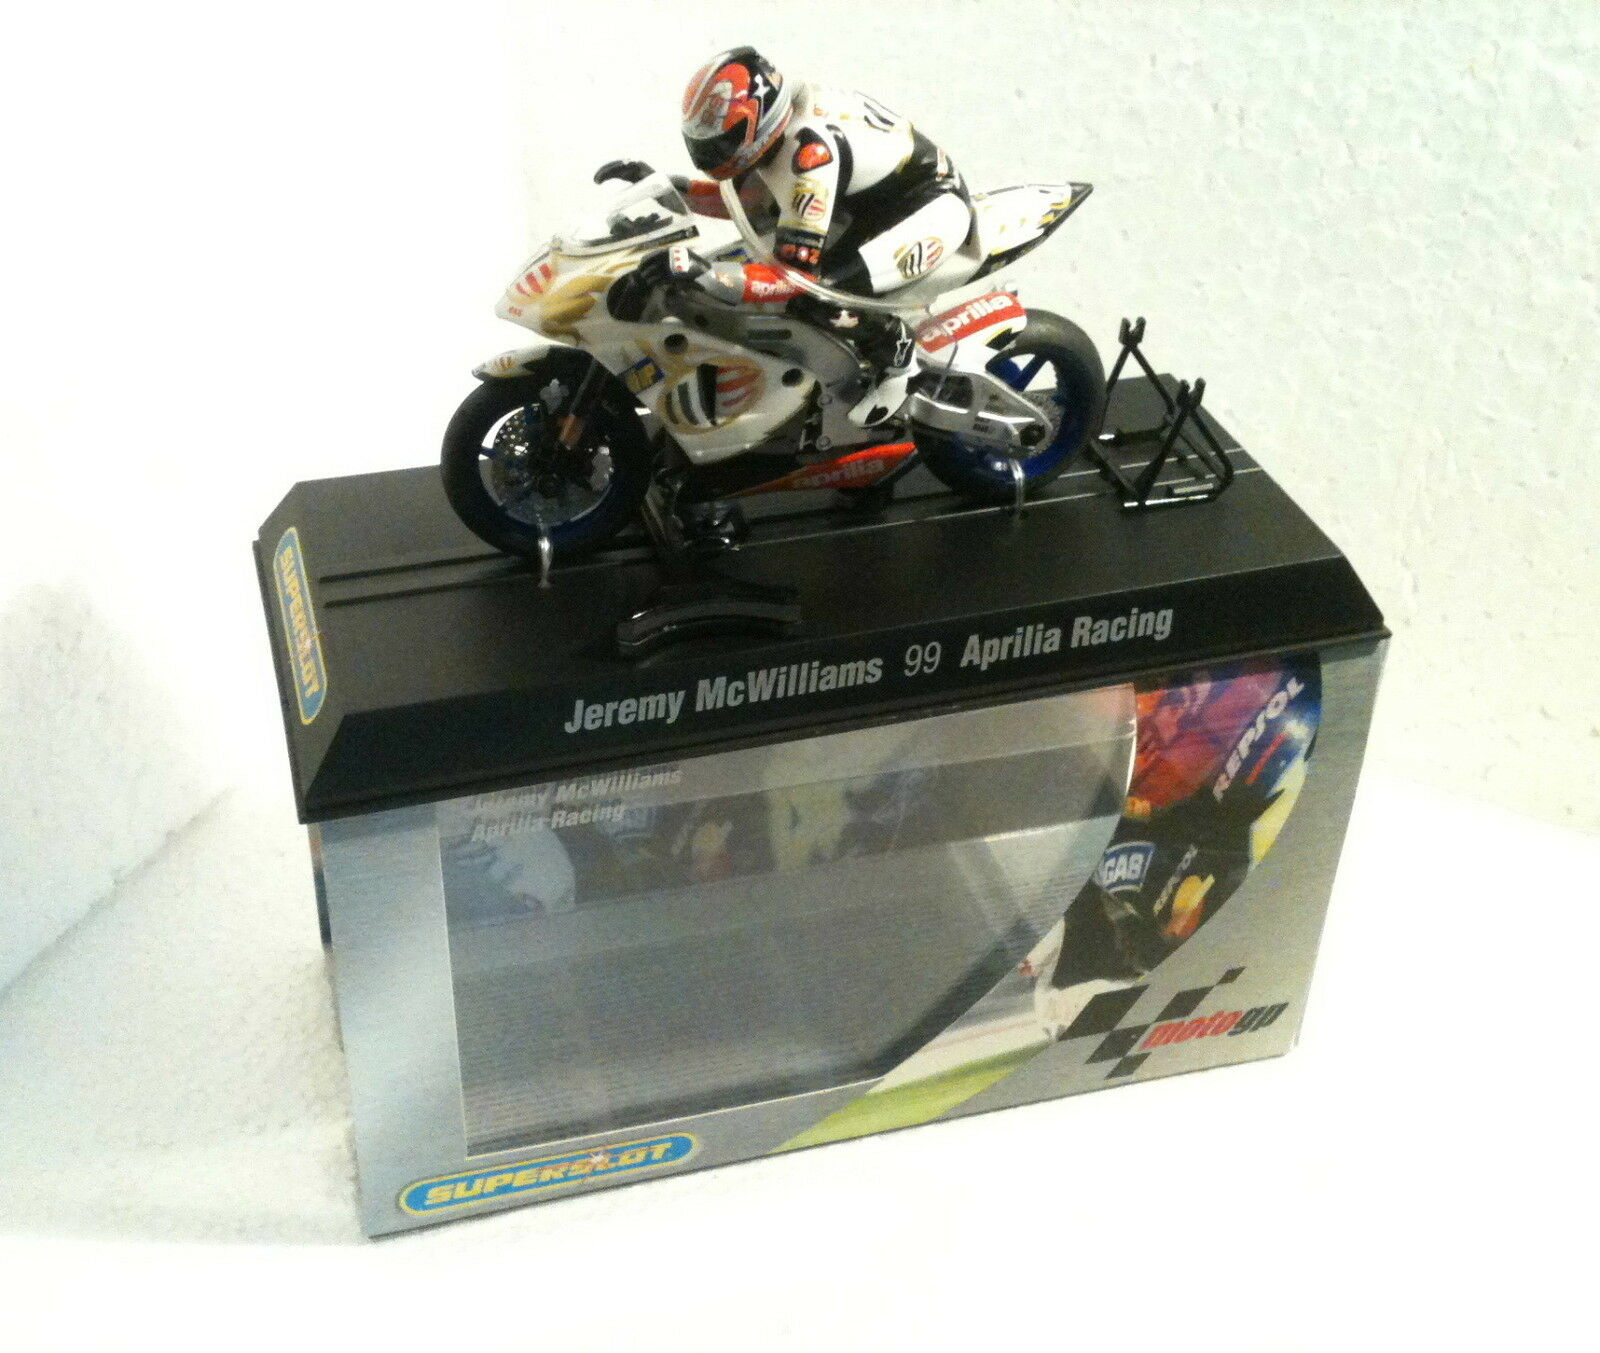 QQ H 6011 Superslot Moto  Aprilia N 99 Jeremy Mcwilliams Aprilia R Scalextric UK  negozio online